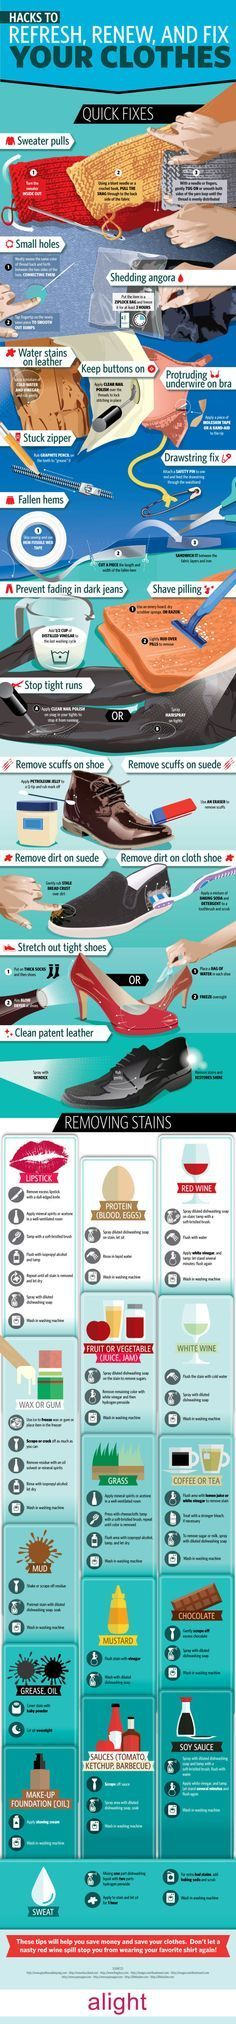 This Graphic Shows You How to Repair Common Clothing Problems: sweater pulls, small holes, shedding angora, water stains on leather, buttons, zippers, protruding underwire on bra, suede, cloth, tight, stains, leather, lipstick, blood, red wine, white, juice, jam, wax, gum, grass, coffee, tea, mud, mustard, chocolate, grease, oil, tomato, ketchup, barbecue, soy sauce, makeup, sweat, clothes